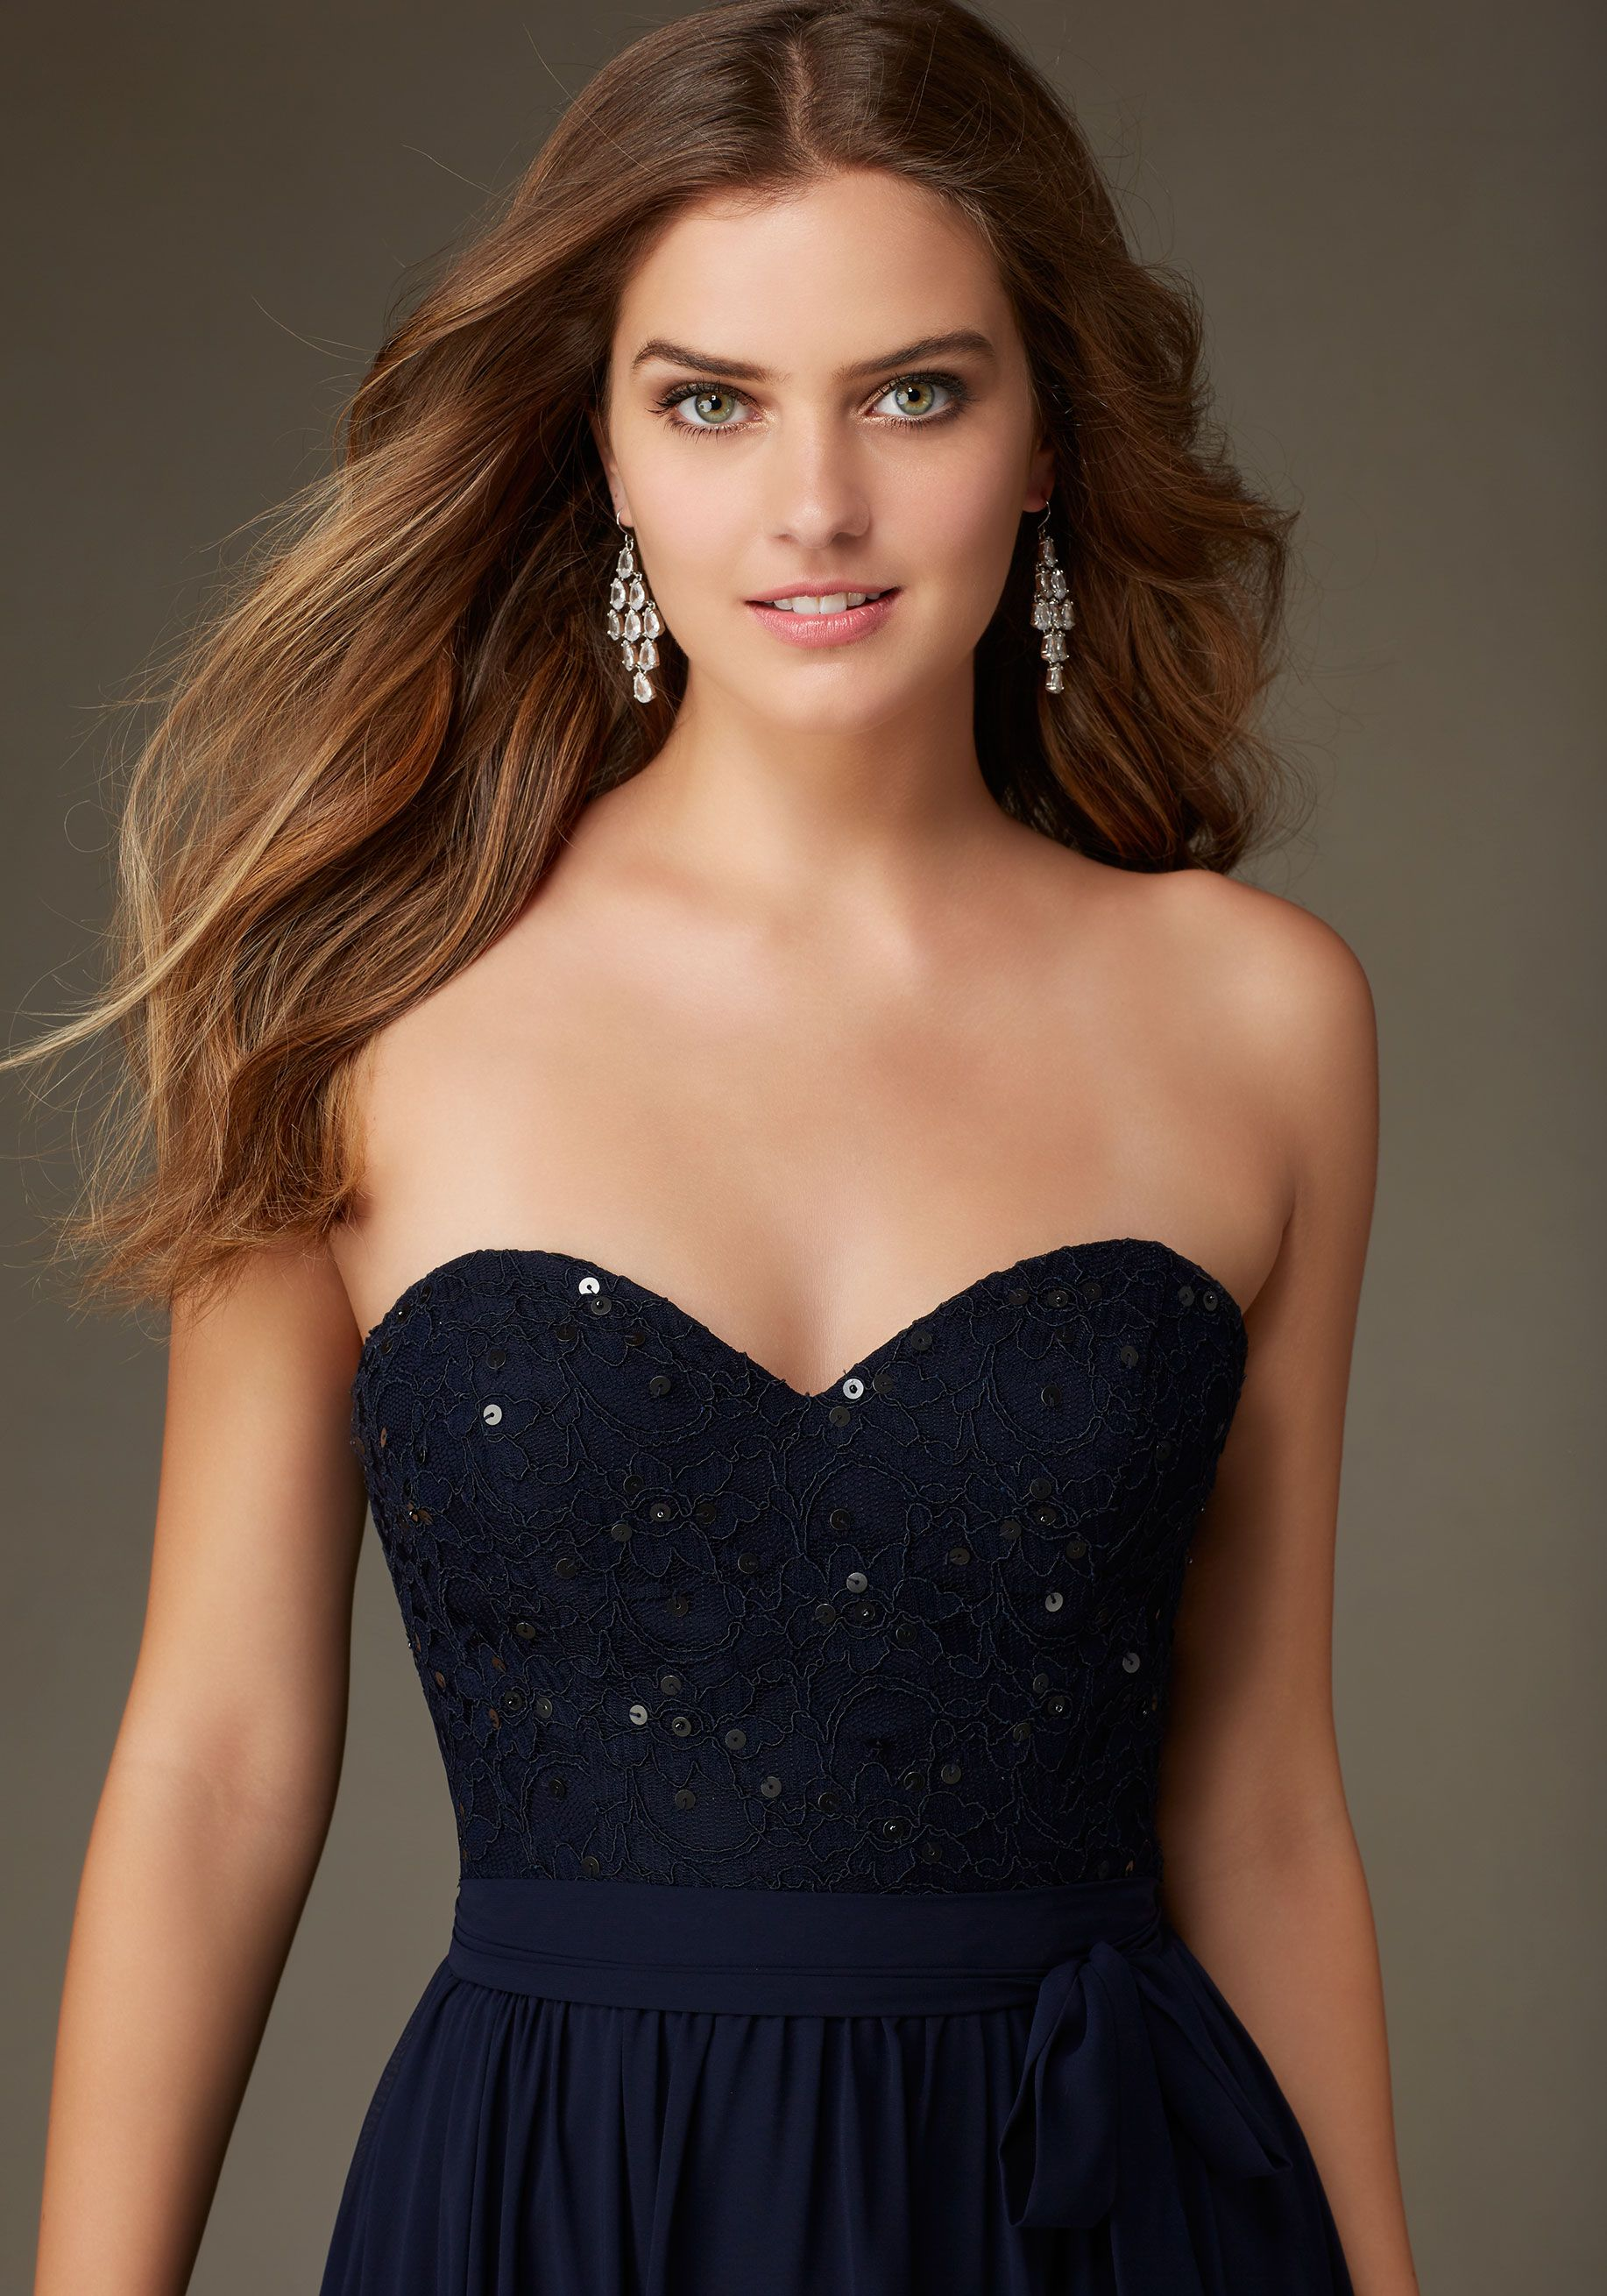 Beaded lace bridesmaid dress with a sweetheart neckline designed by